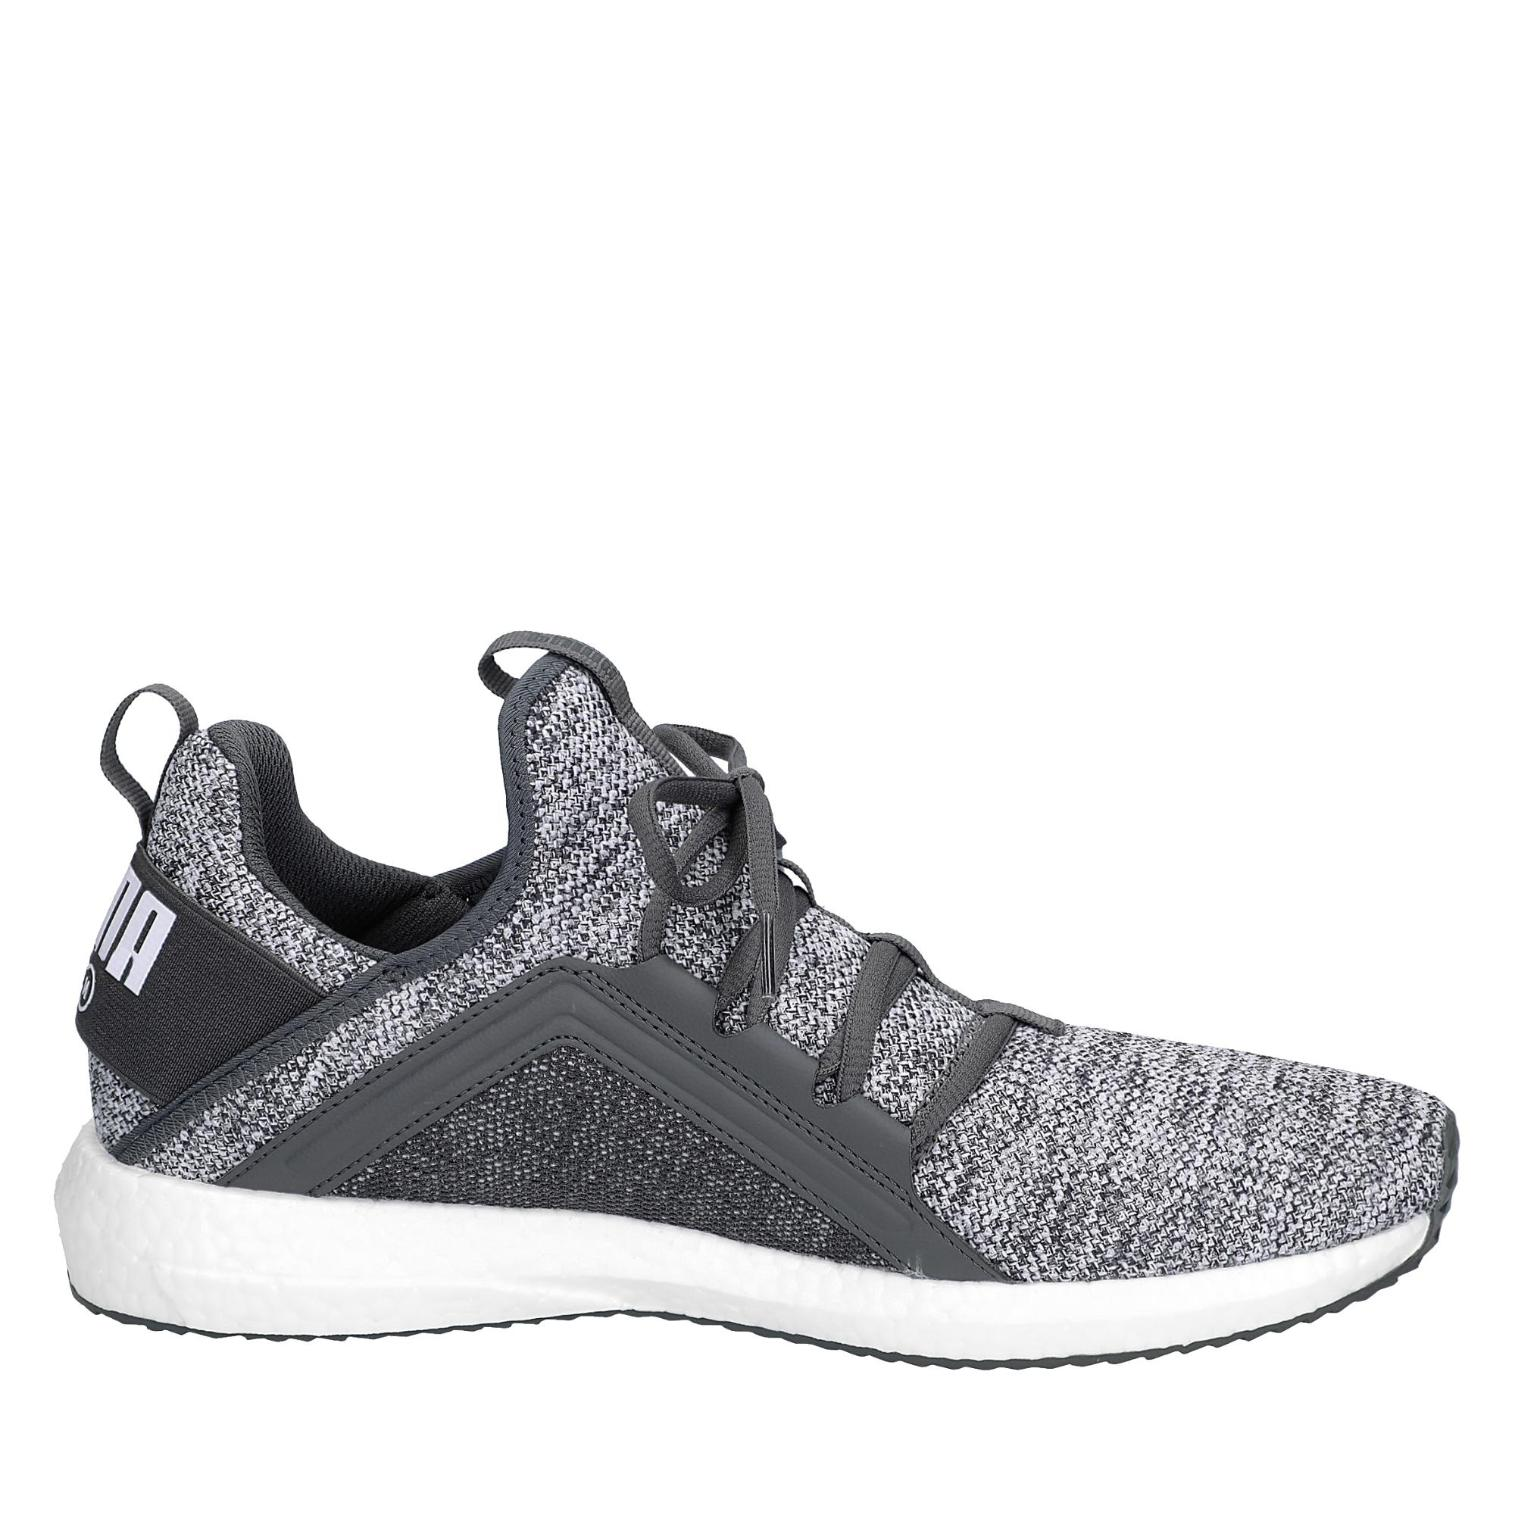 Puma Mega NRGY in Knit Sneaker in NRGY Farbe anthrazit/weiß ad811c